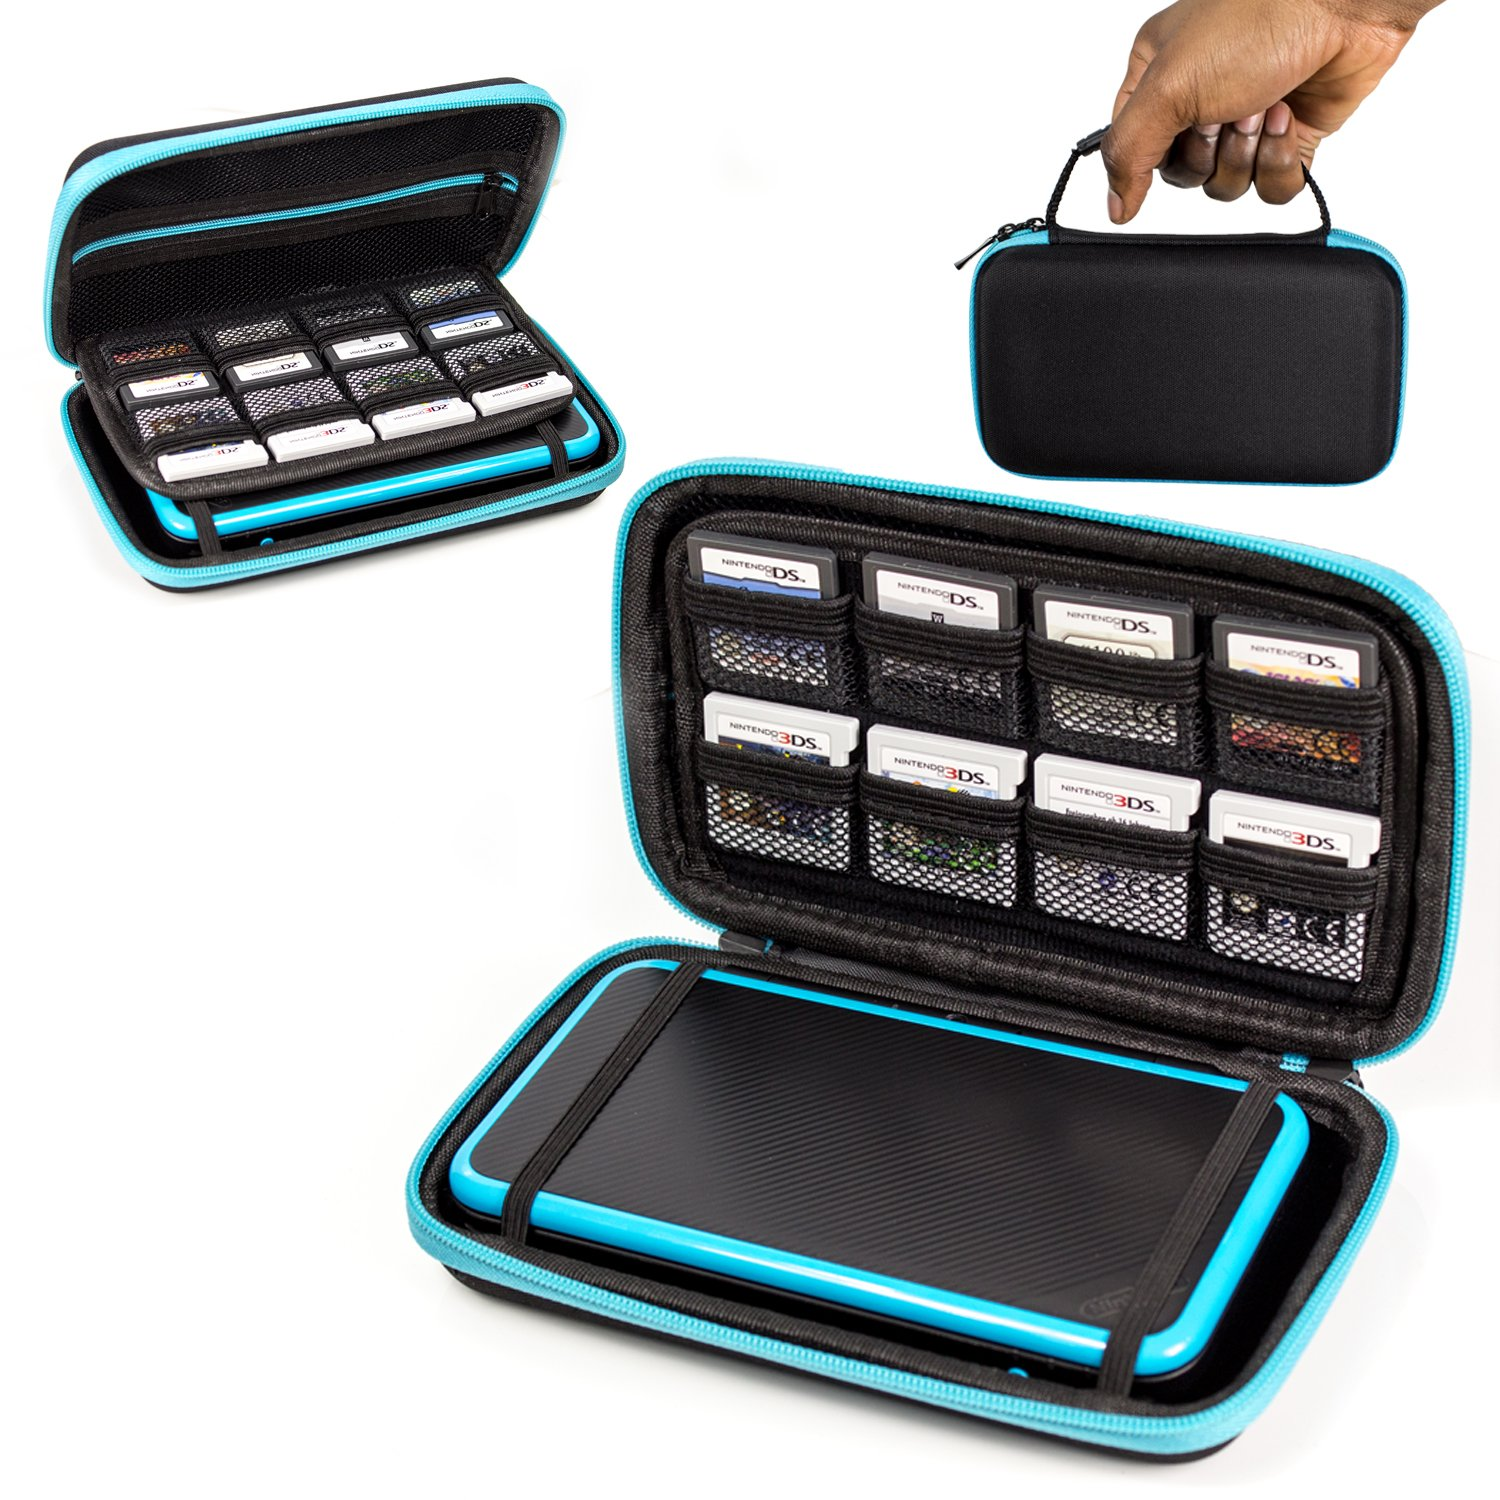 New nintendo 2ds xl black turquoise nintendo 2ds computer and 2ds xl case orzly carry case for new nintendo 2ds xl protective hard shell stopboris Images